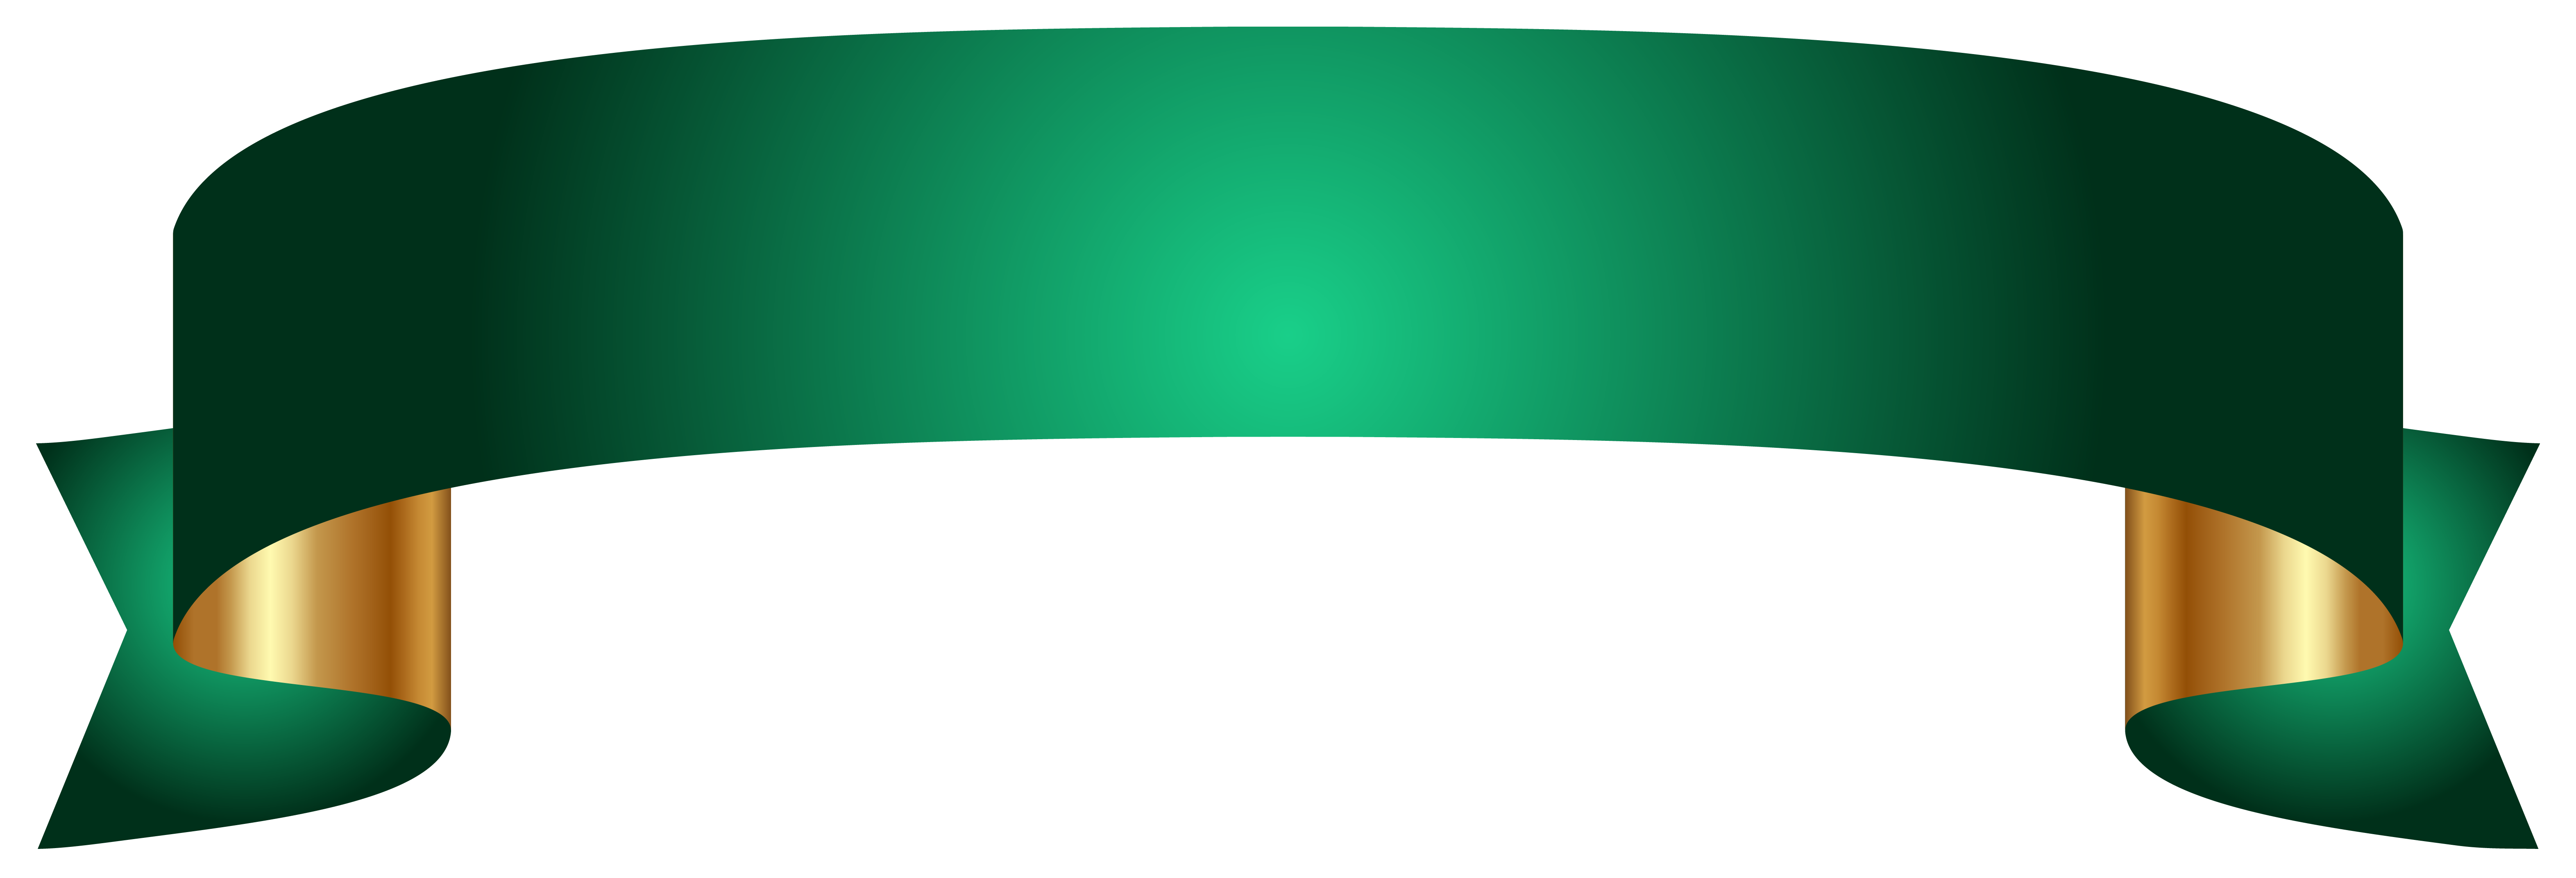 Transparent banner png